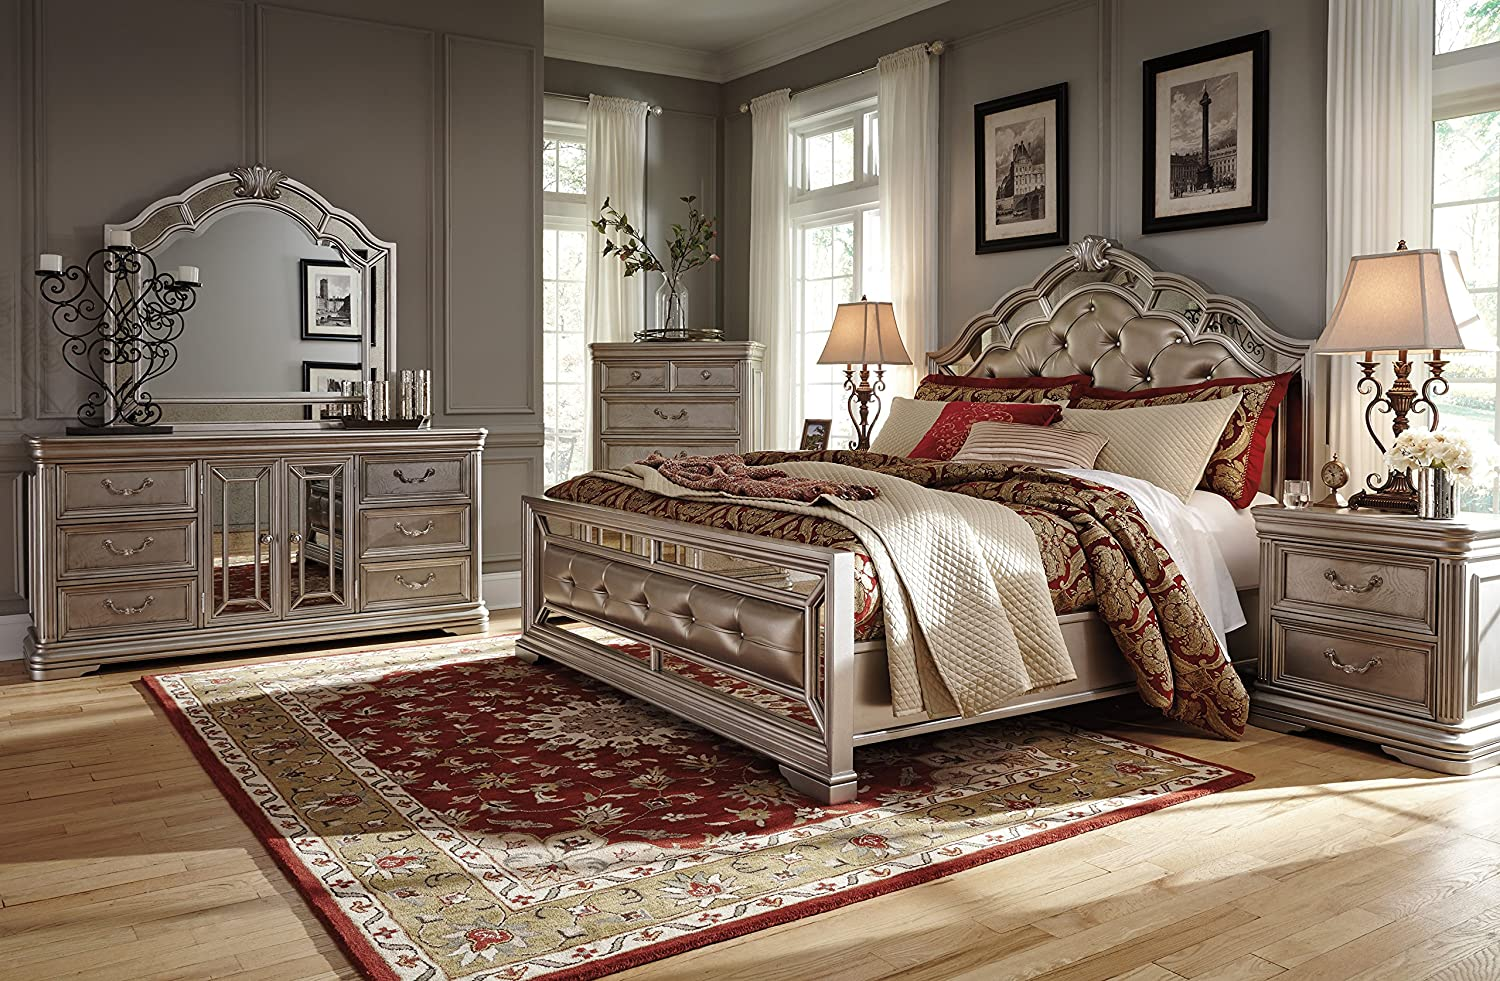 650 Bedroom Set King Size Cheap HD